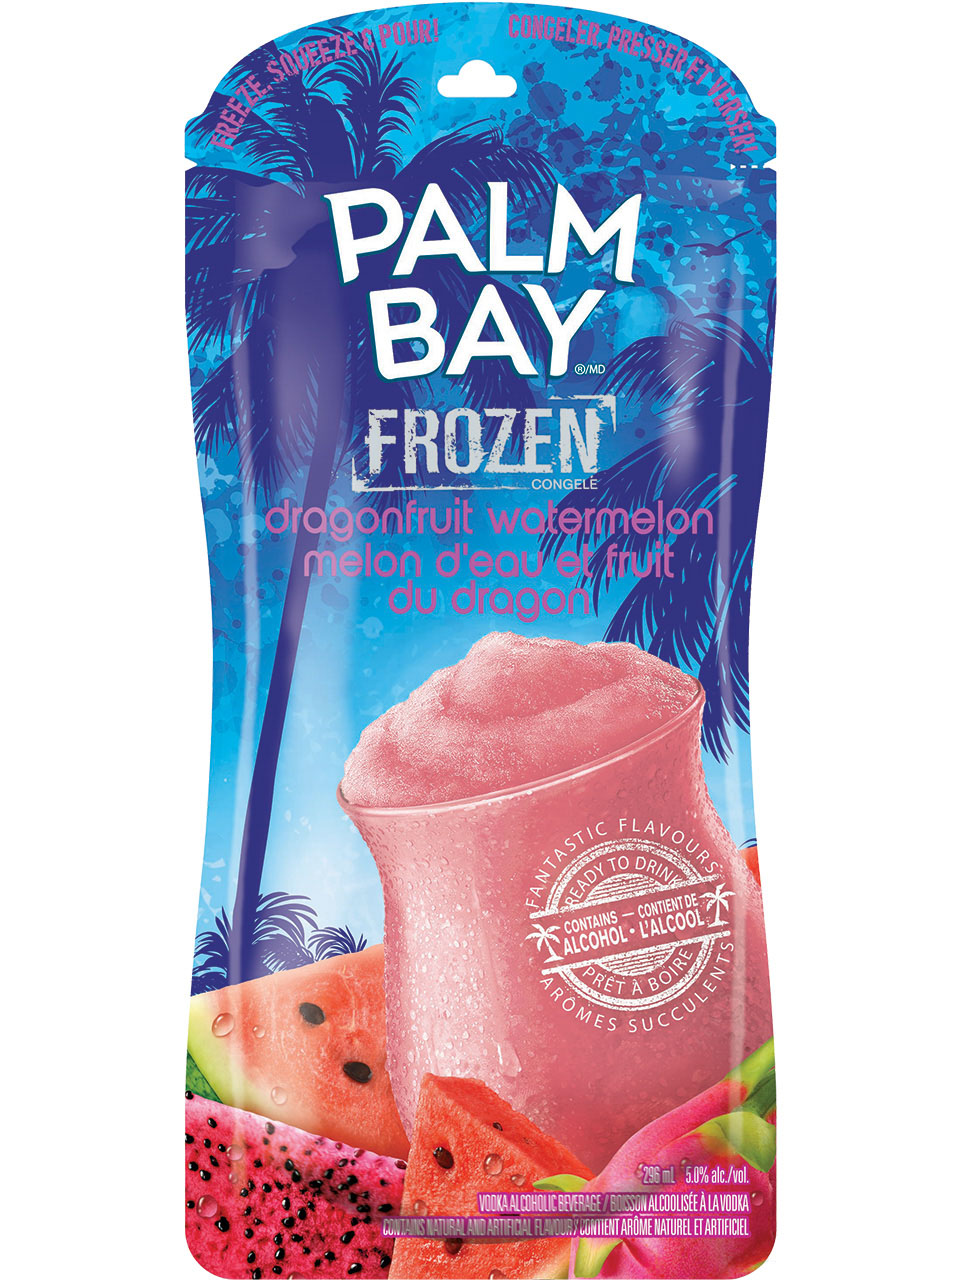 Palm Bay Frozen Dragonfruit Watermelon Pouch